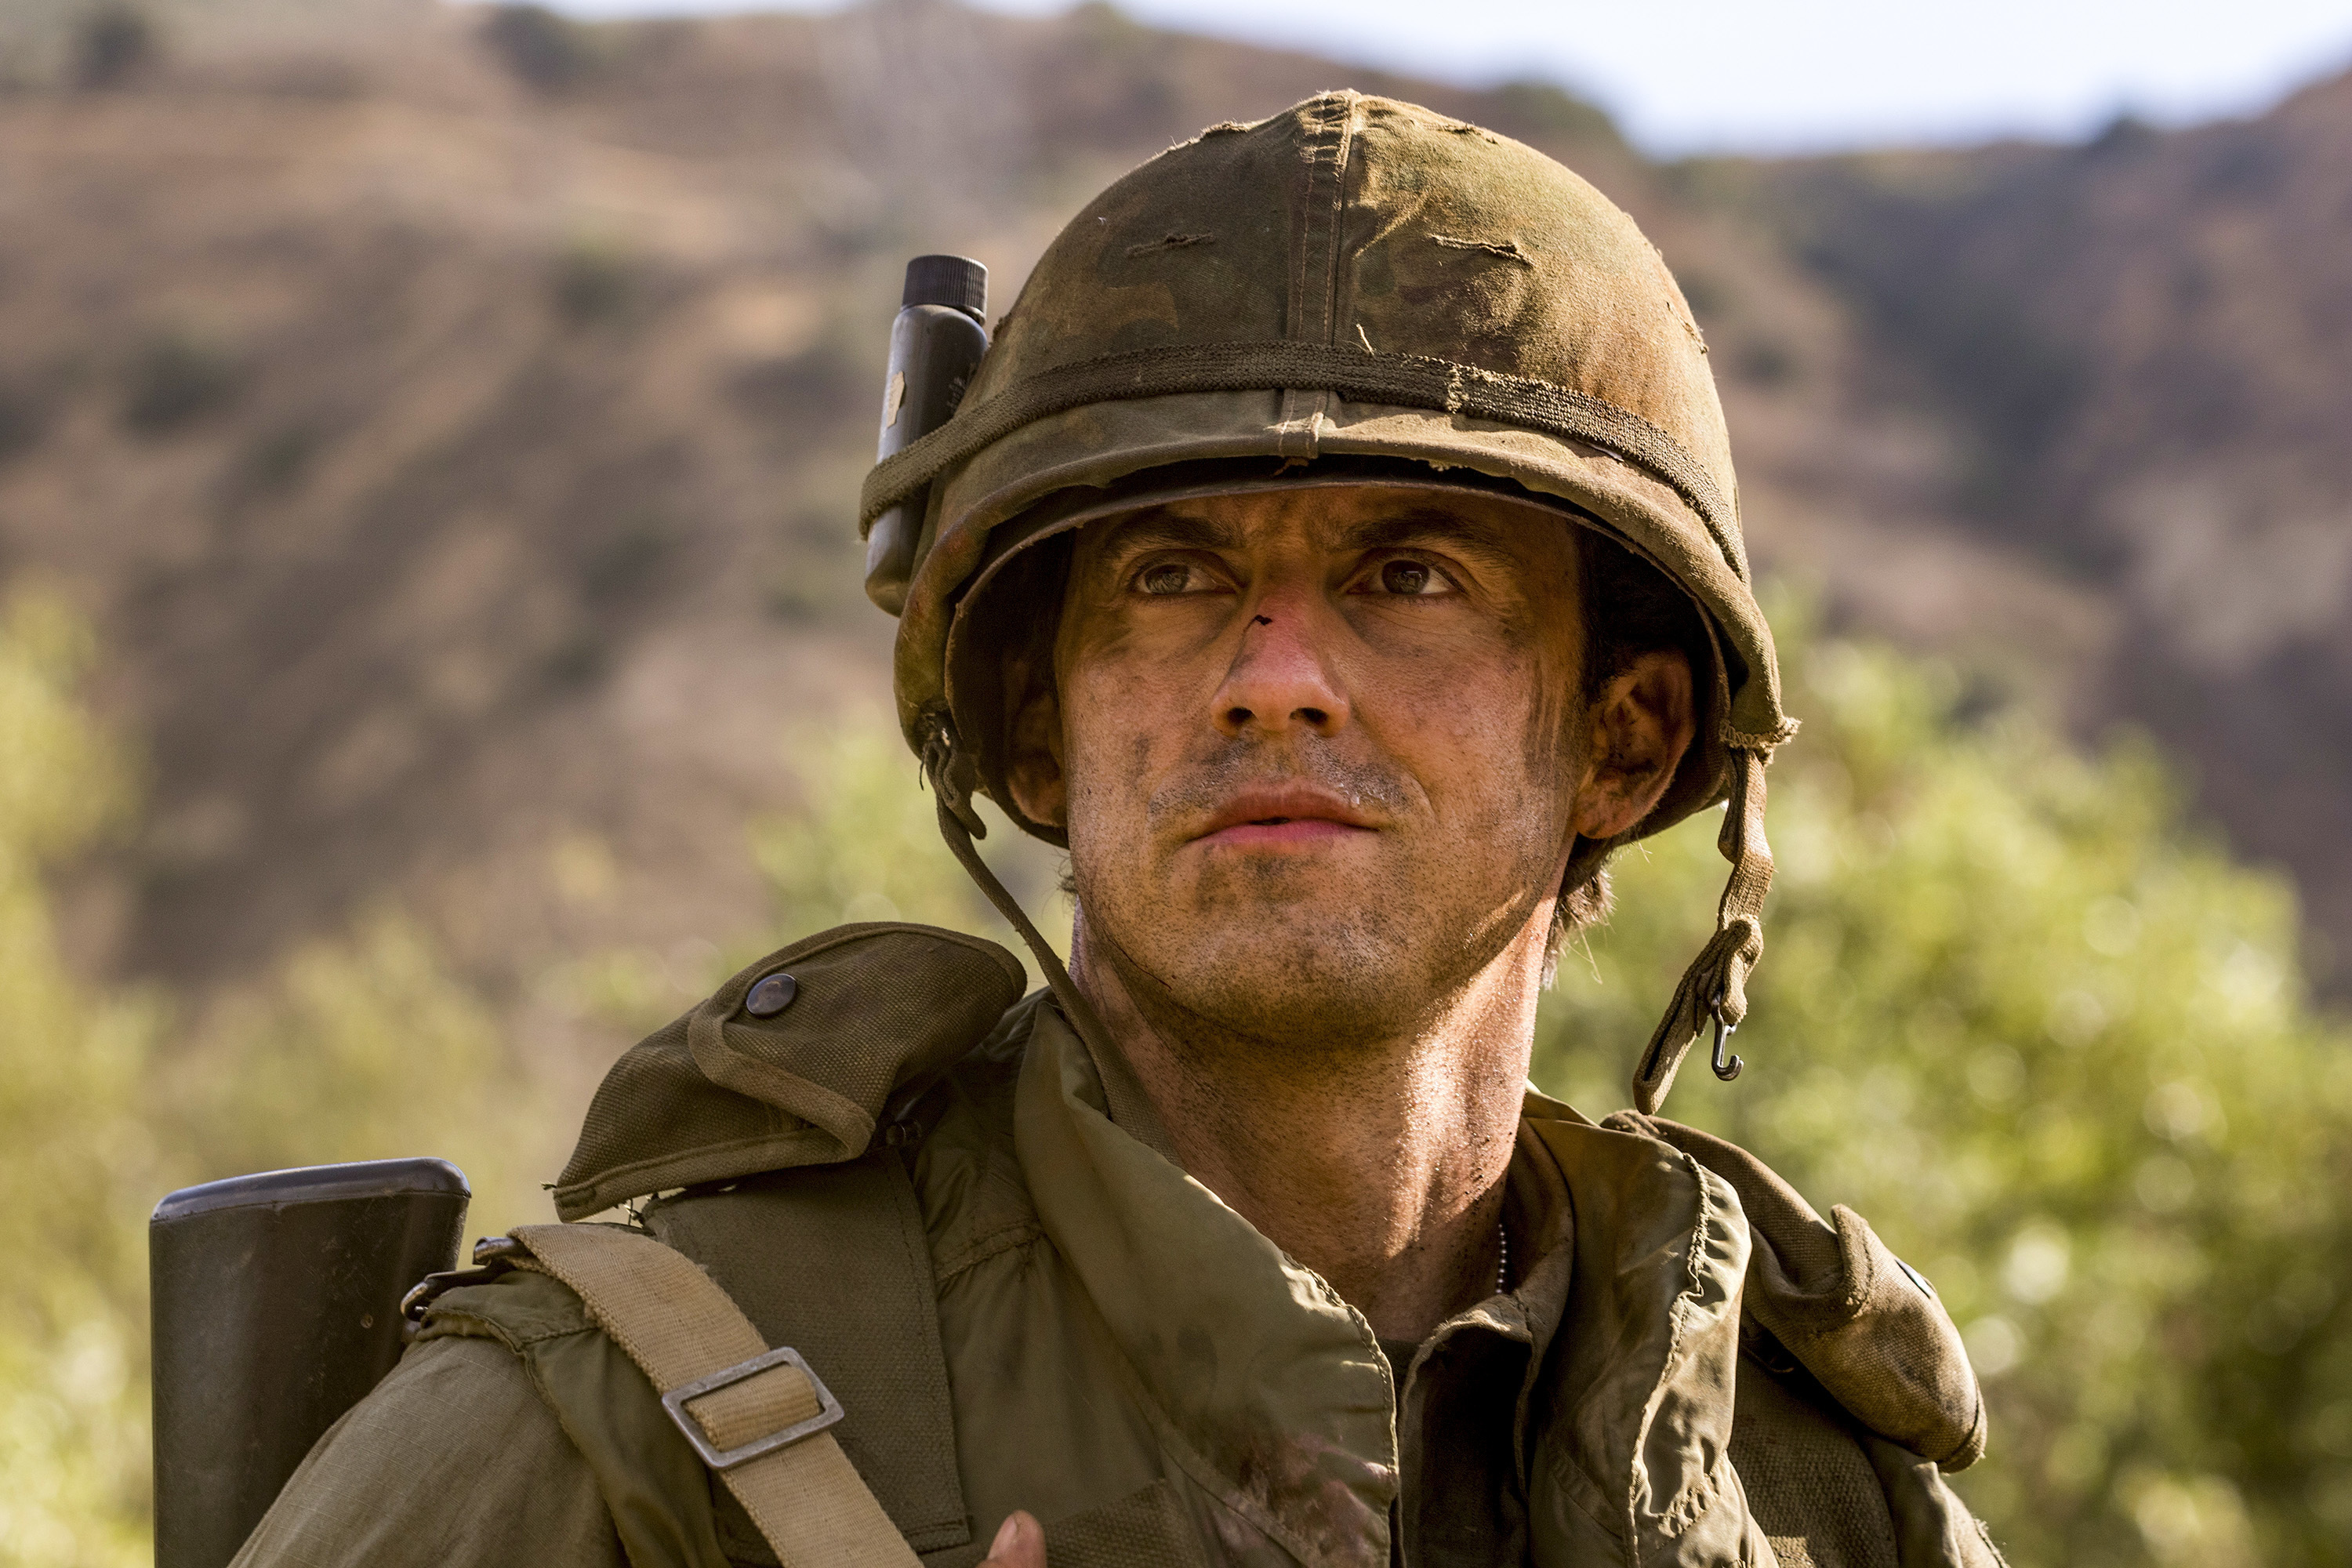 """This image provided by NBC shows Milo Ventimiglia as Jack Pearson in a scene from """"This Is Us."""""""